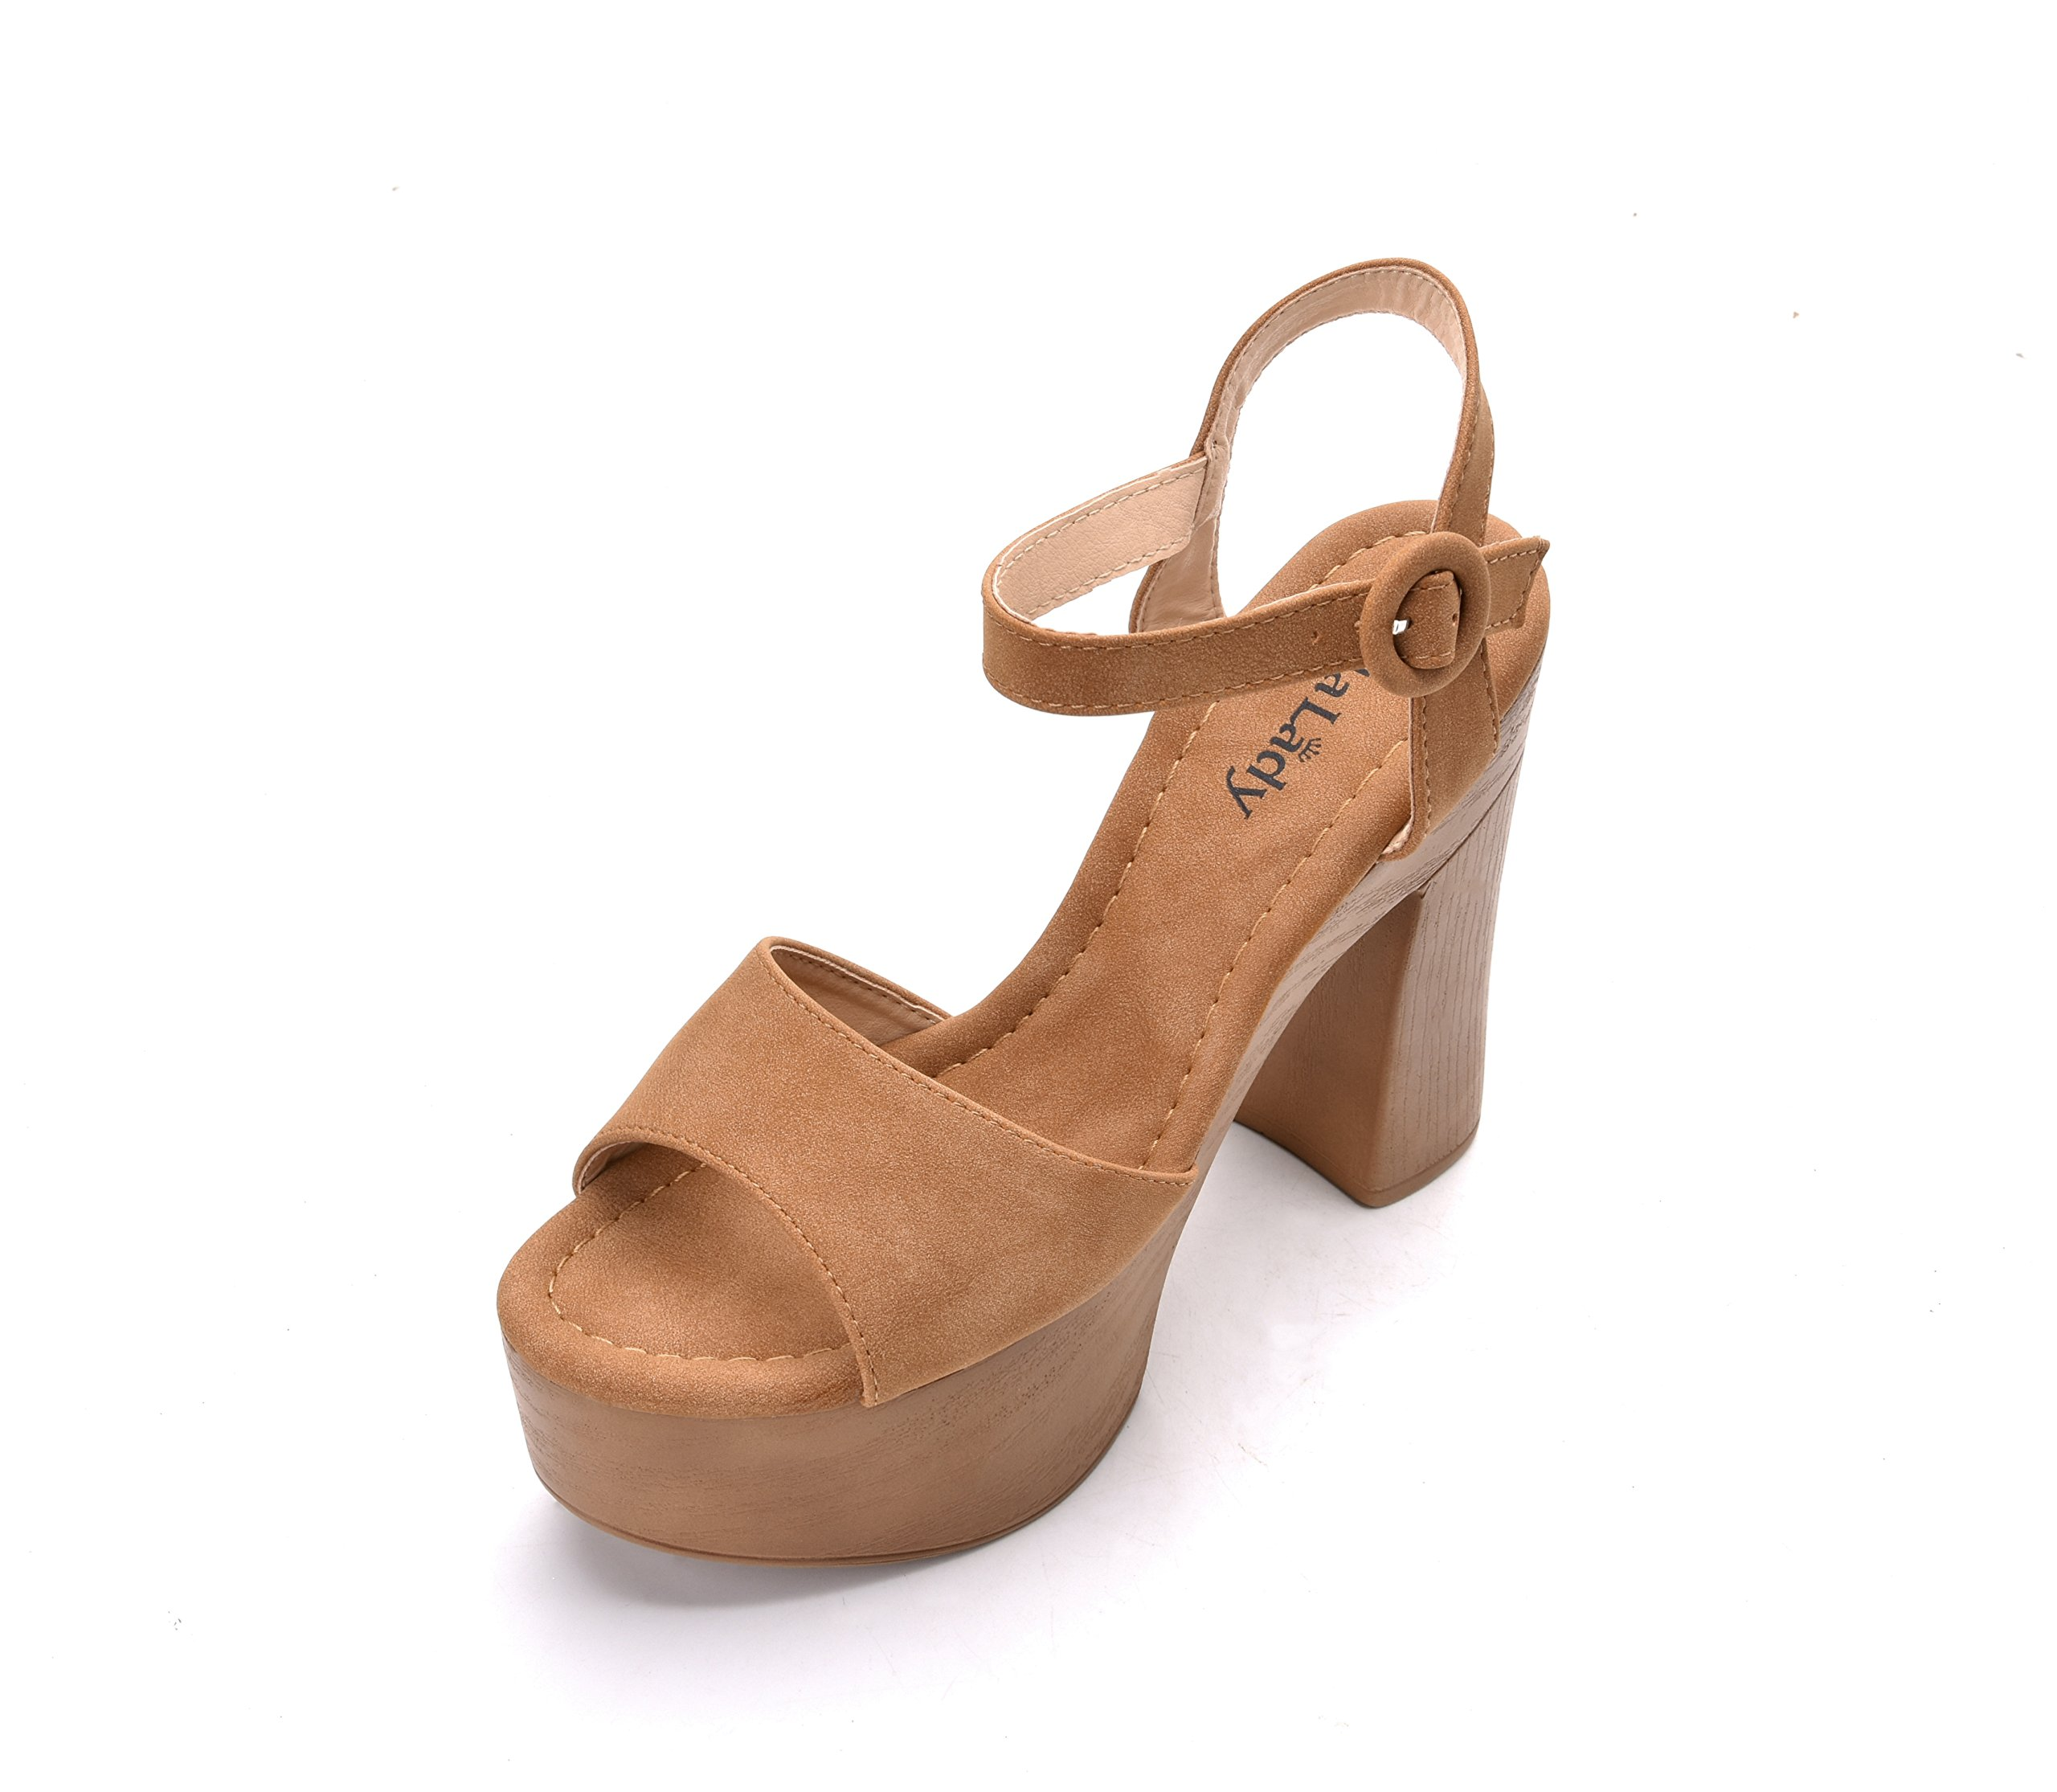 Evoking Chic Styles Ankle Strap Adjustable Buckle Chunky Heeled Sandals Platform Sole Shoes for Women, Loleta Camel Size 9